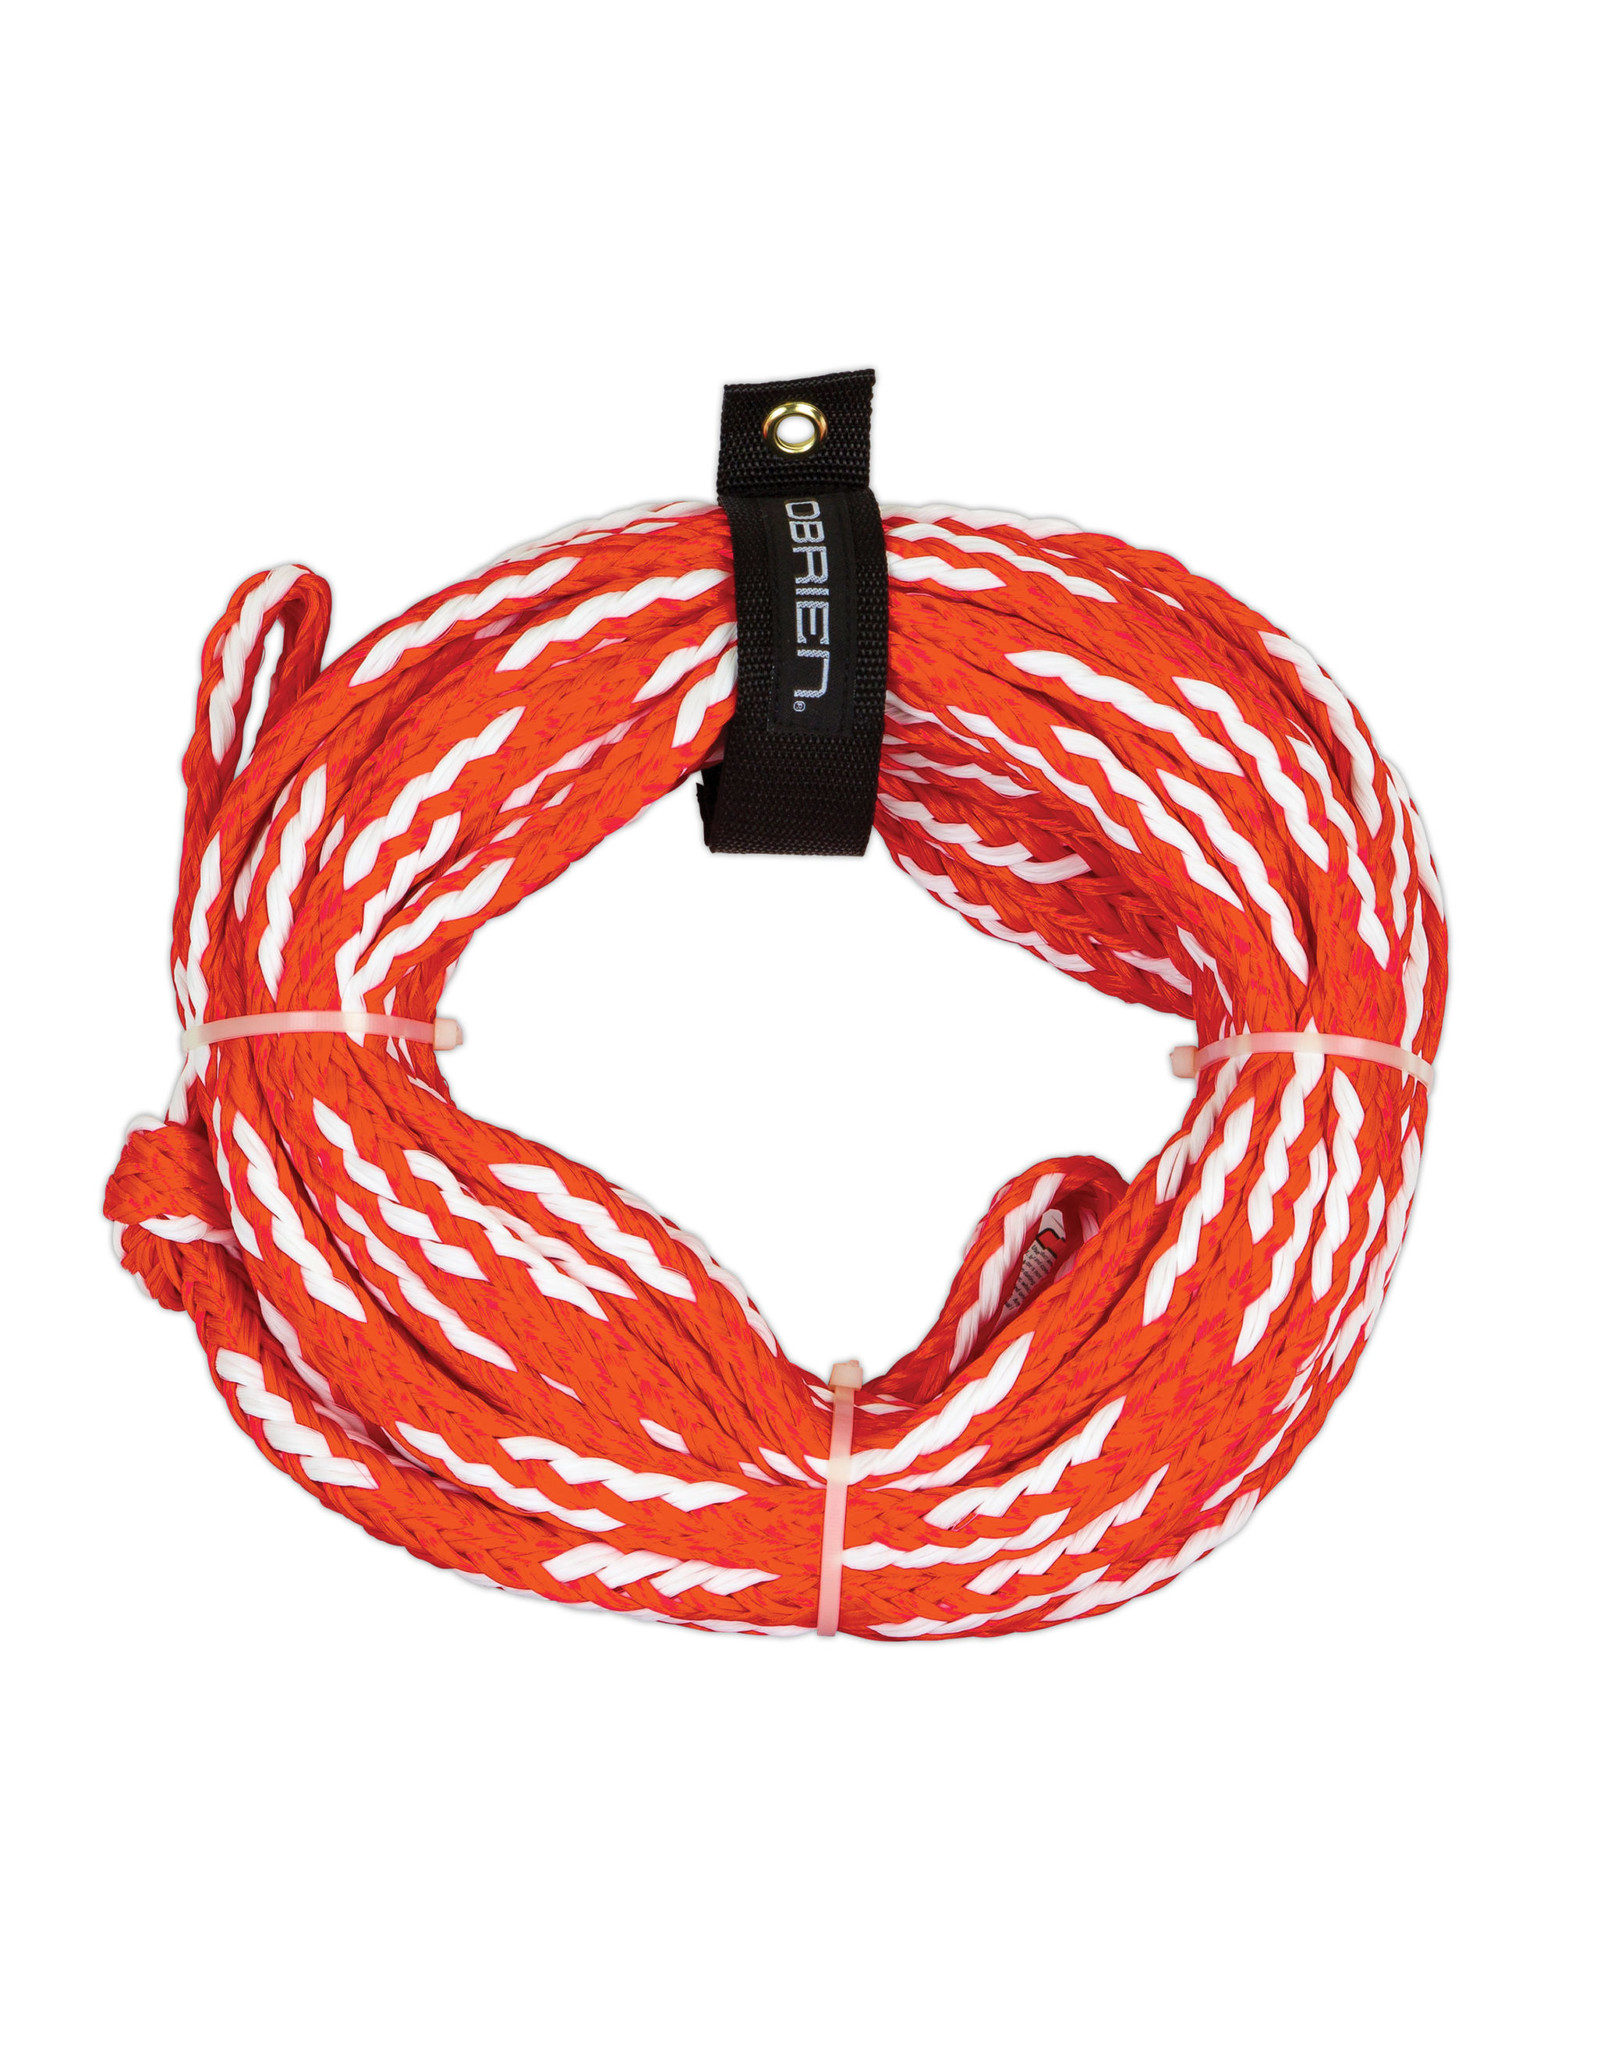 O'Brien 4P TUBE ROPE